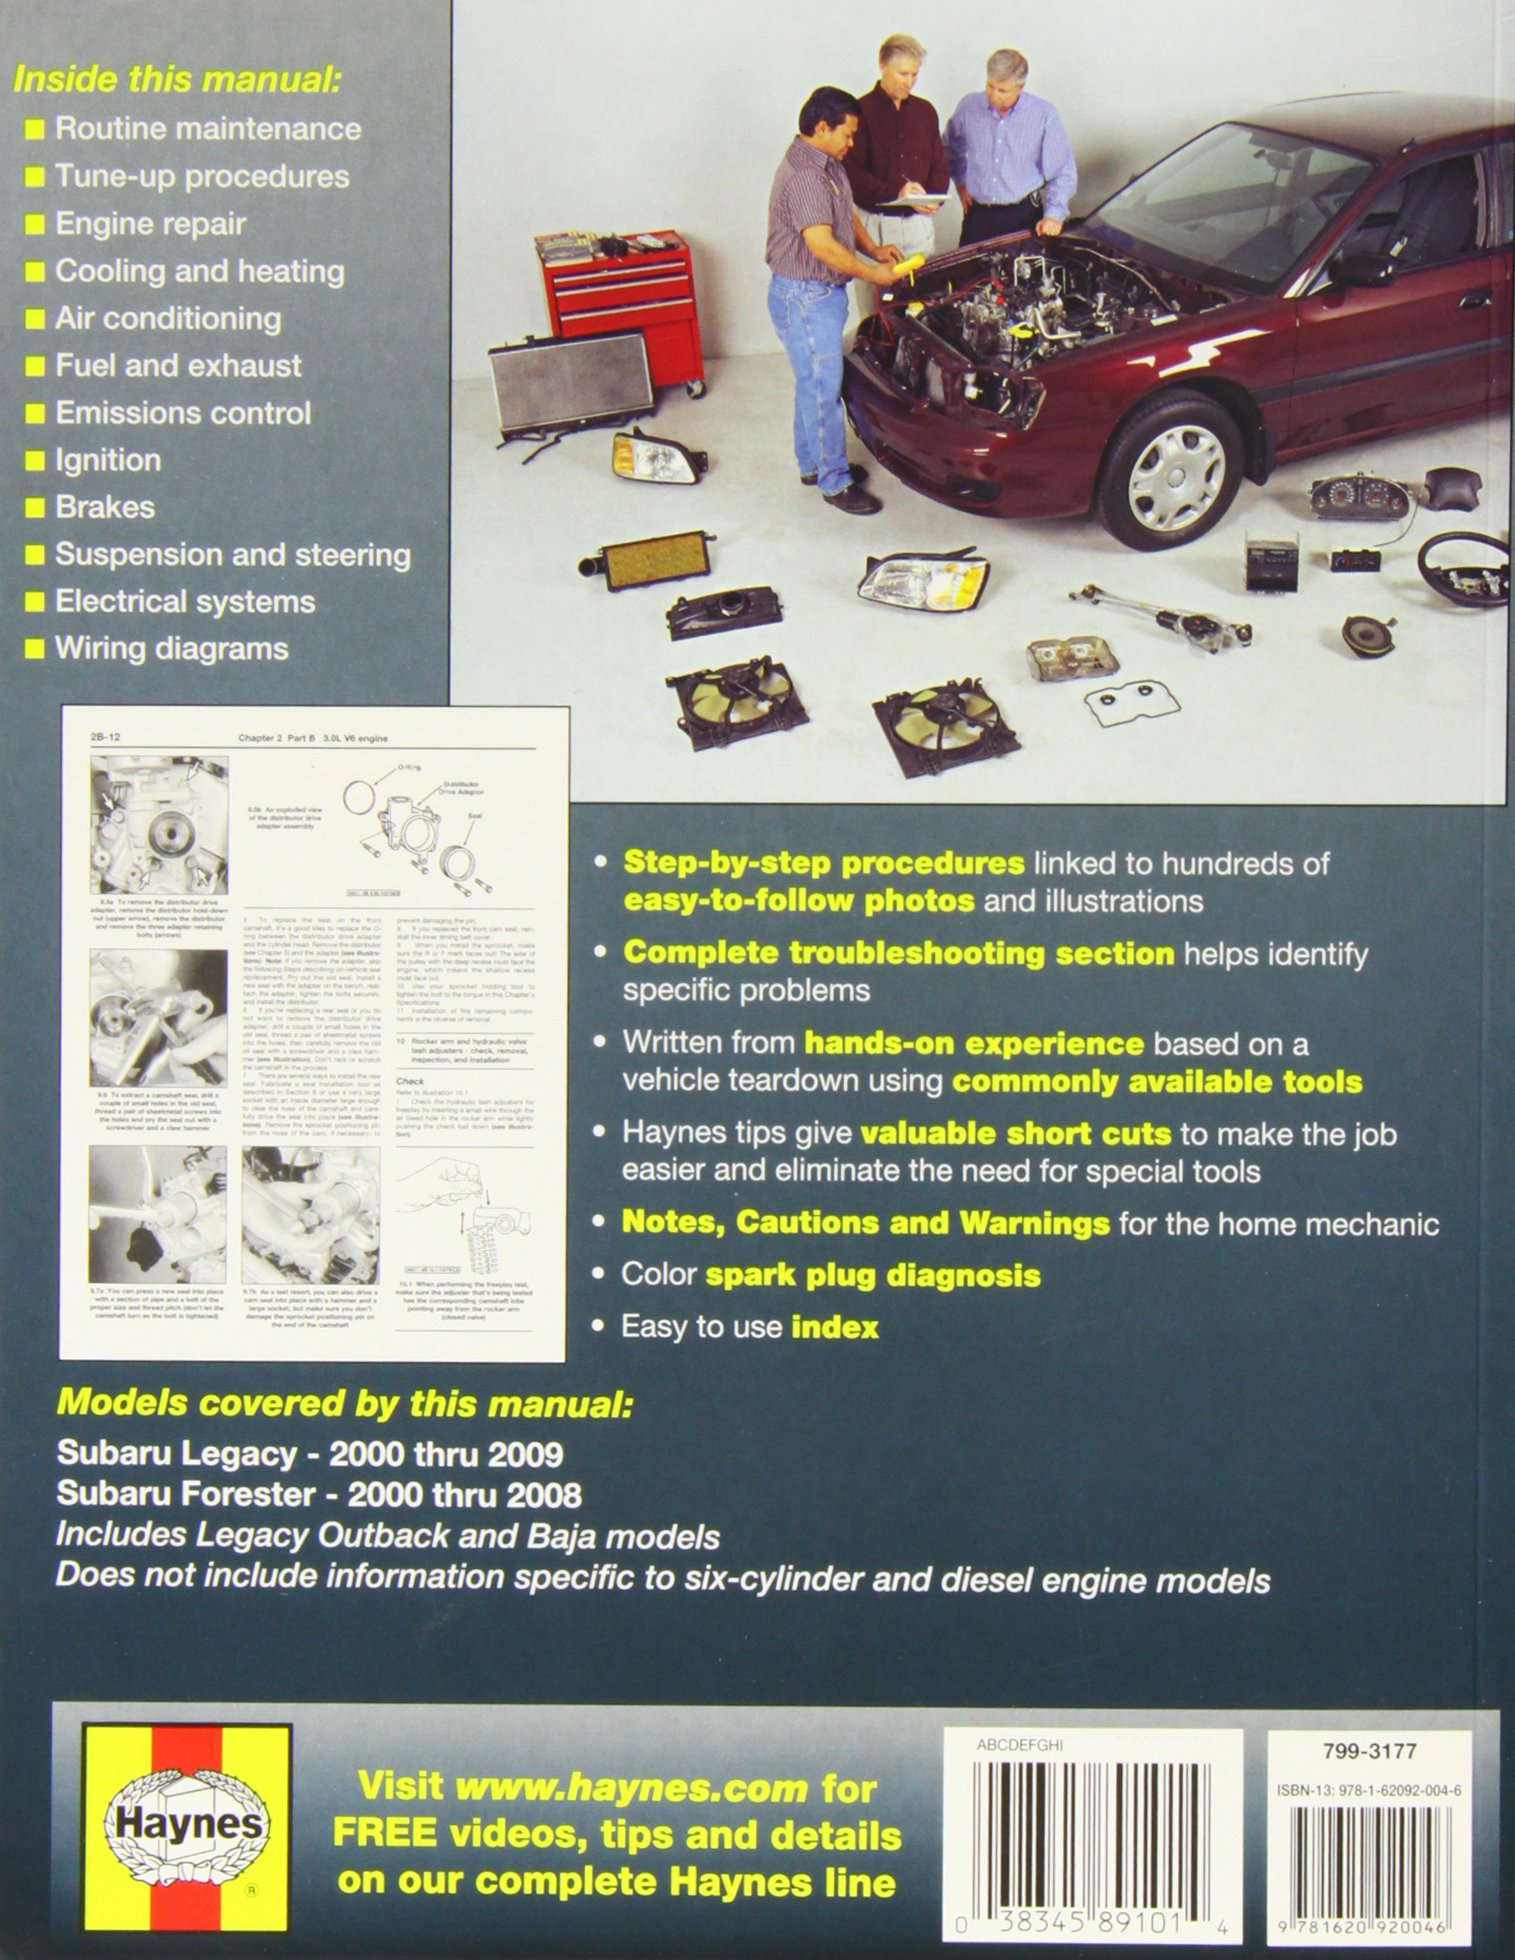 Subaru Legacy Forester 2000 Thru 2009 Baja Turbo Wiring Schematic 2008 Includes Outback And Haynes Manuals Editors Of